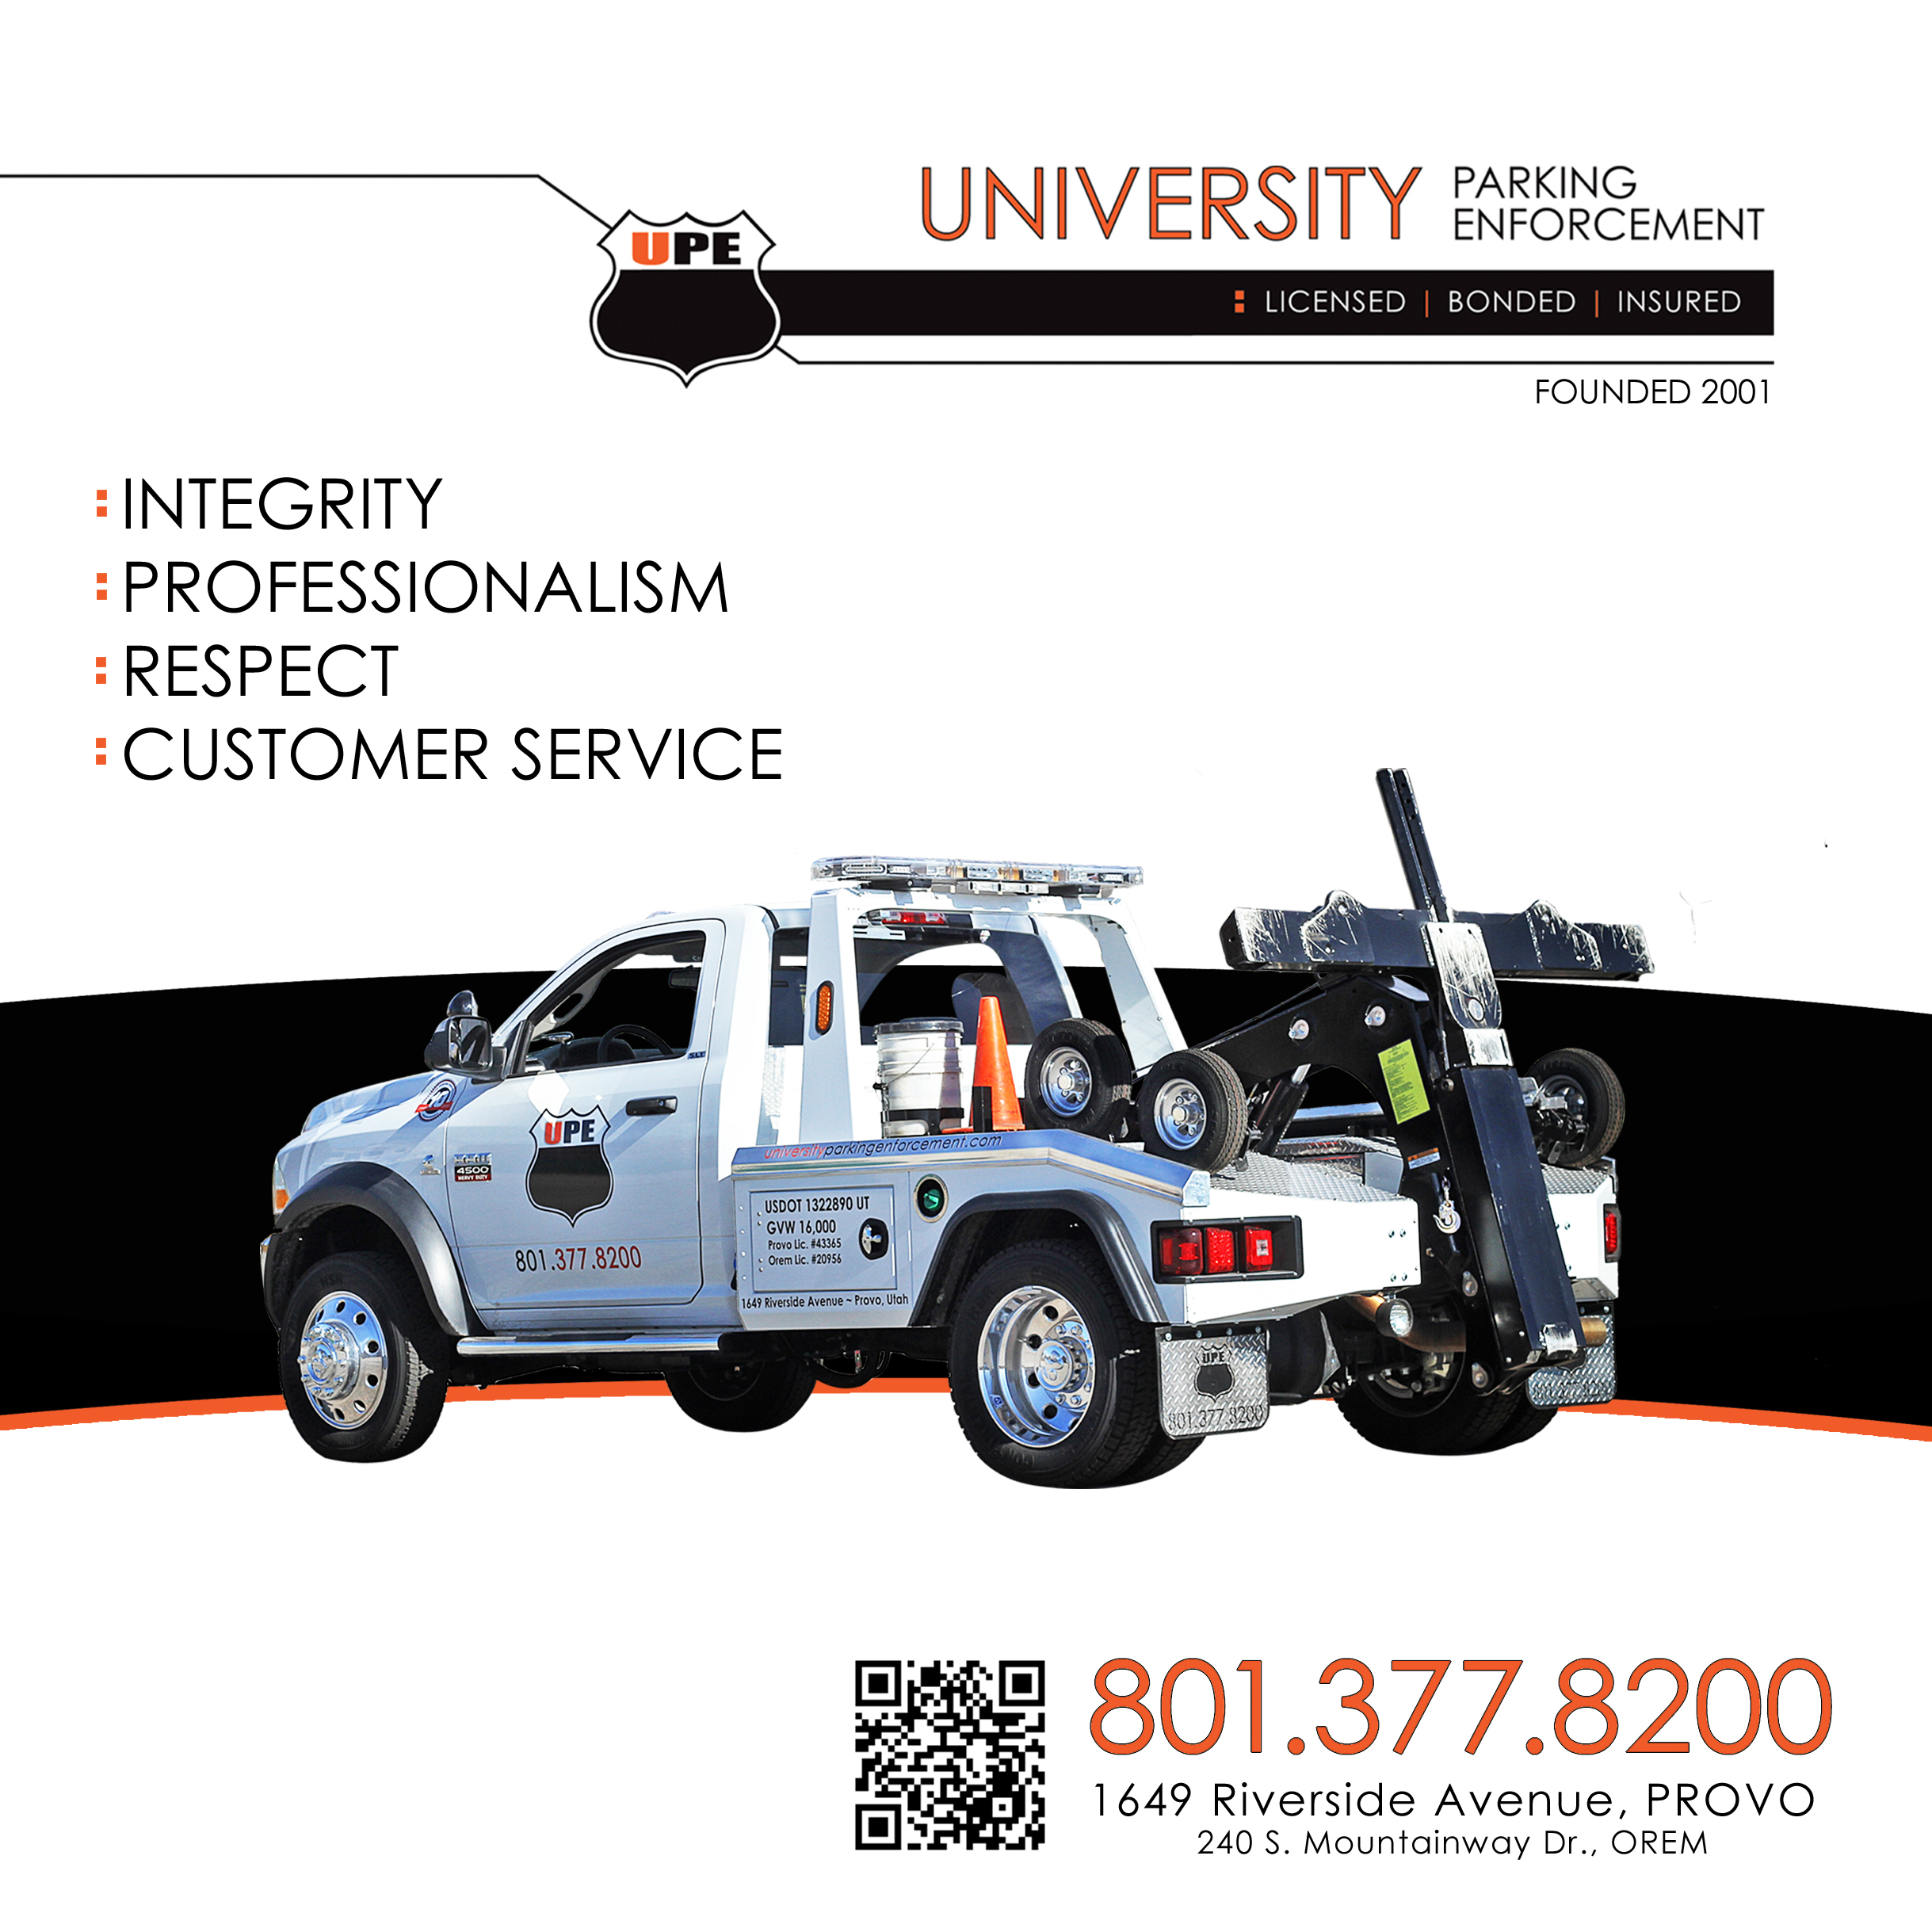 University Parking Enforcement - ad image